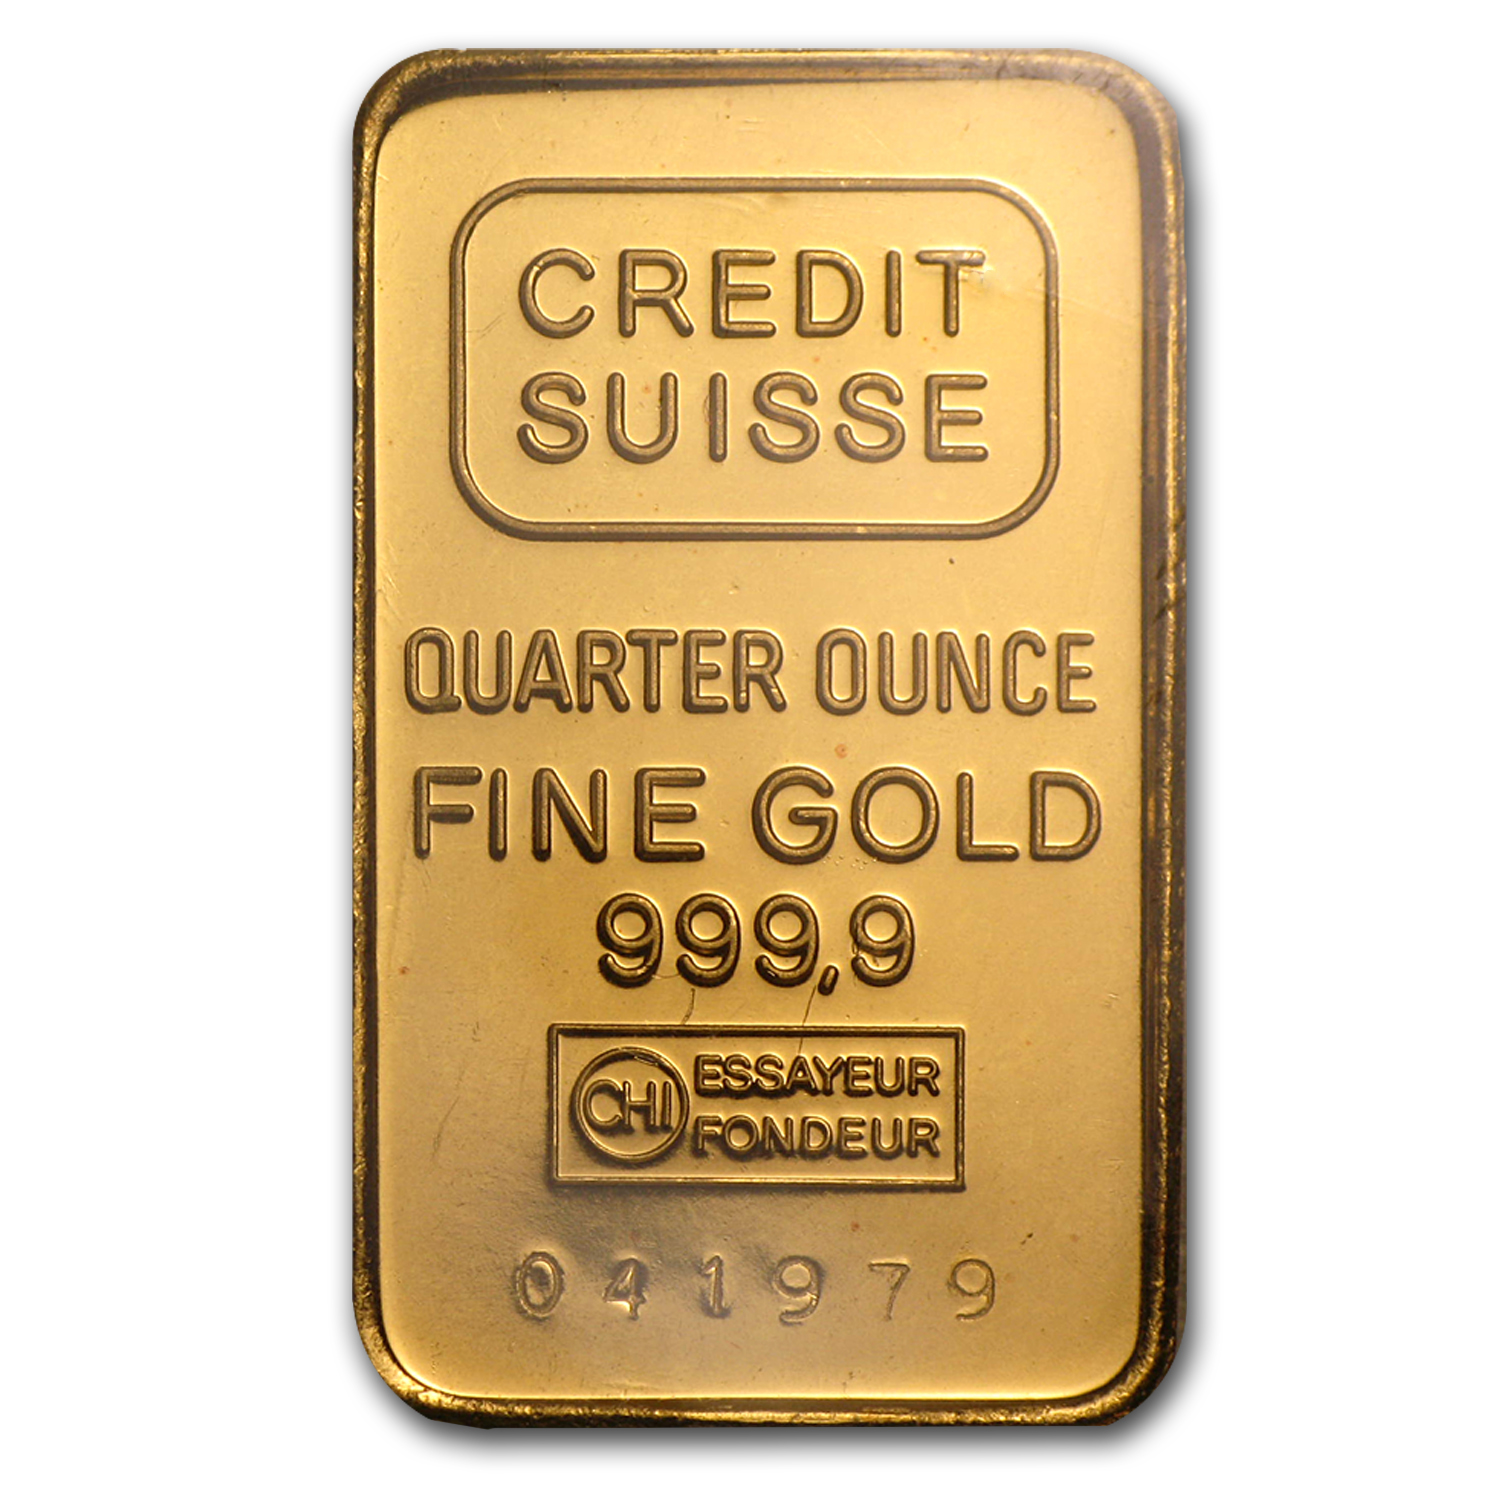 1/4 oz Gold Bar - Credit Suisse